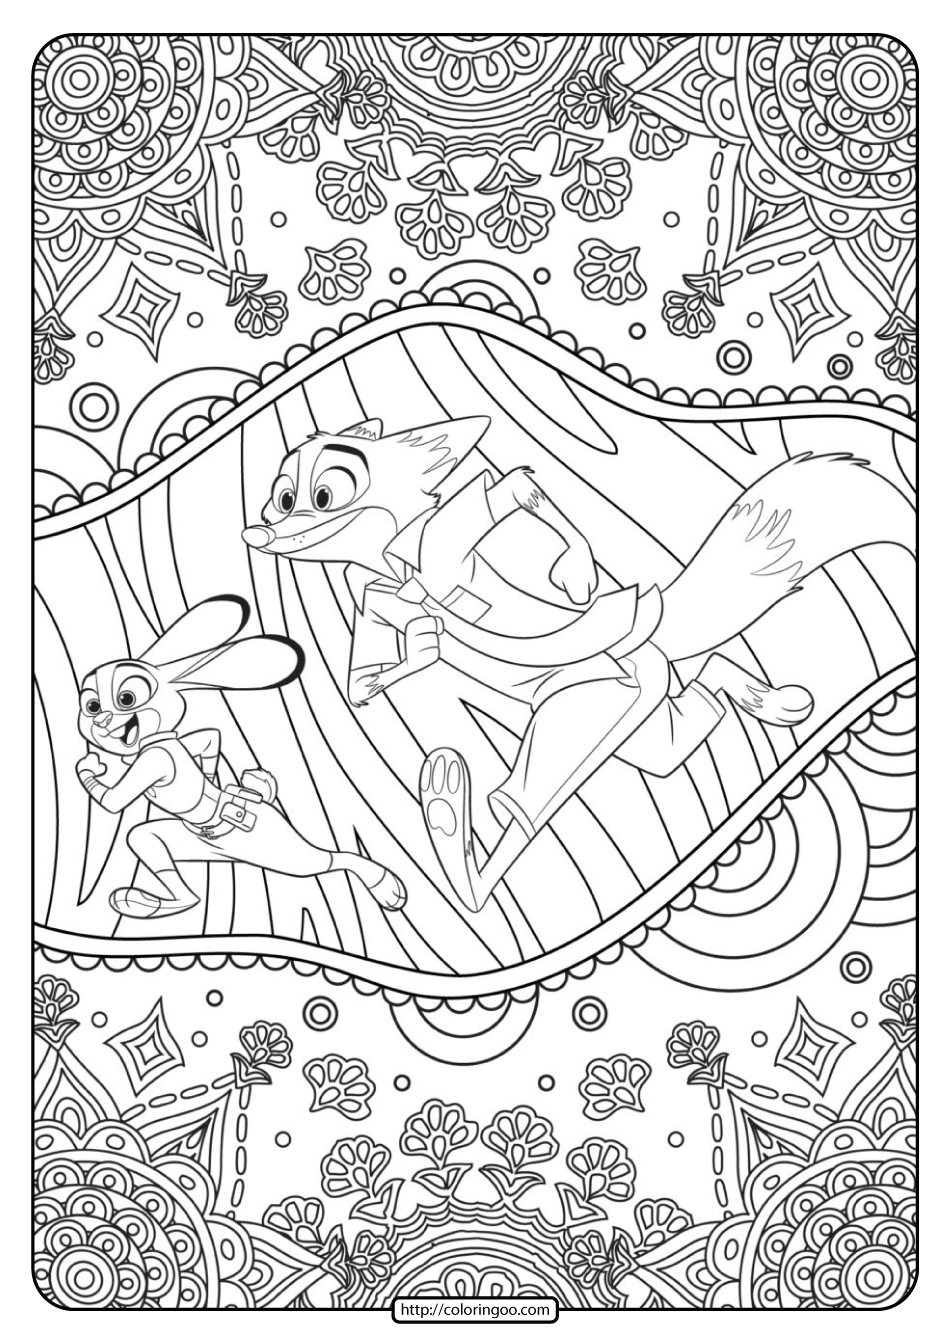 Zootopia Judy Hopps and Nick Wilde Coloring Page